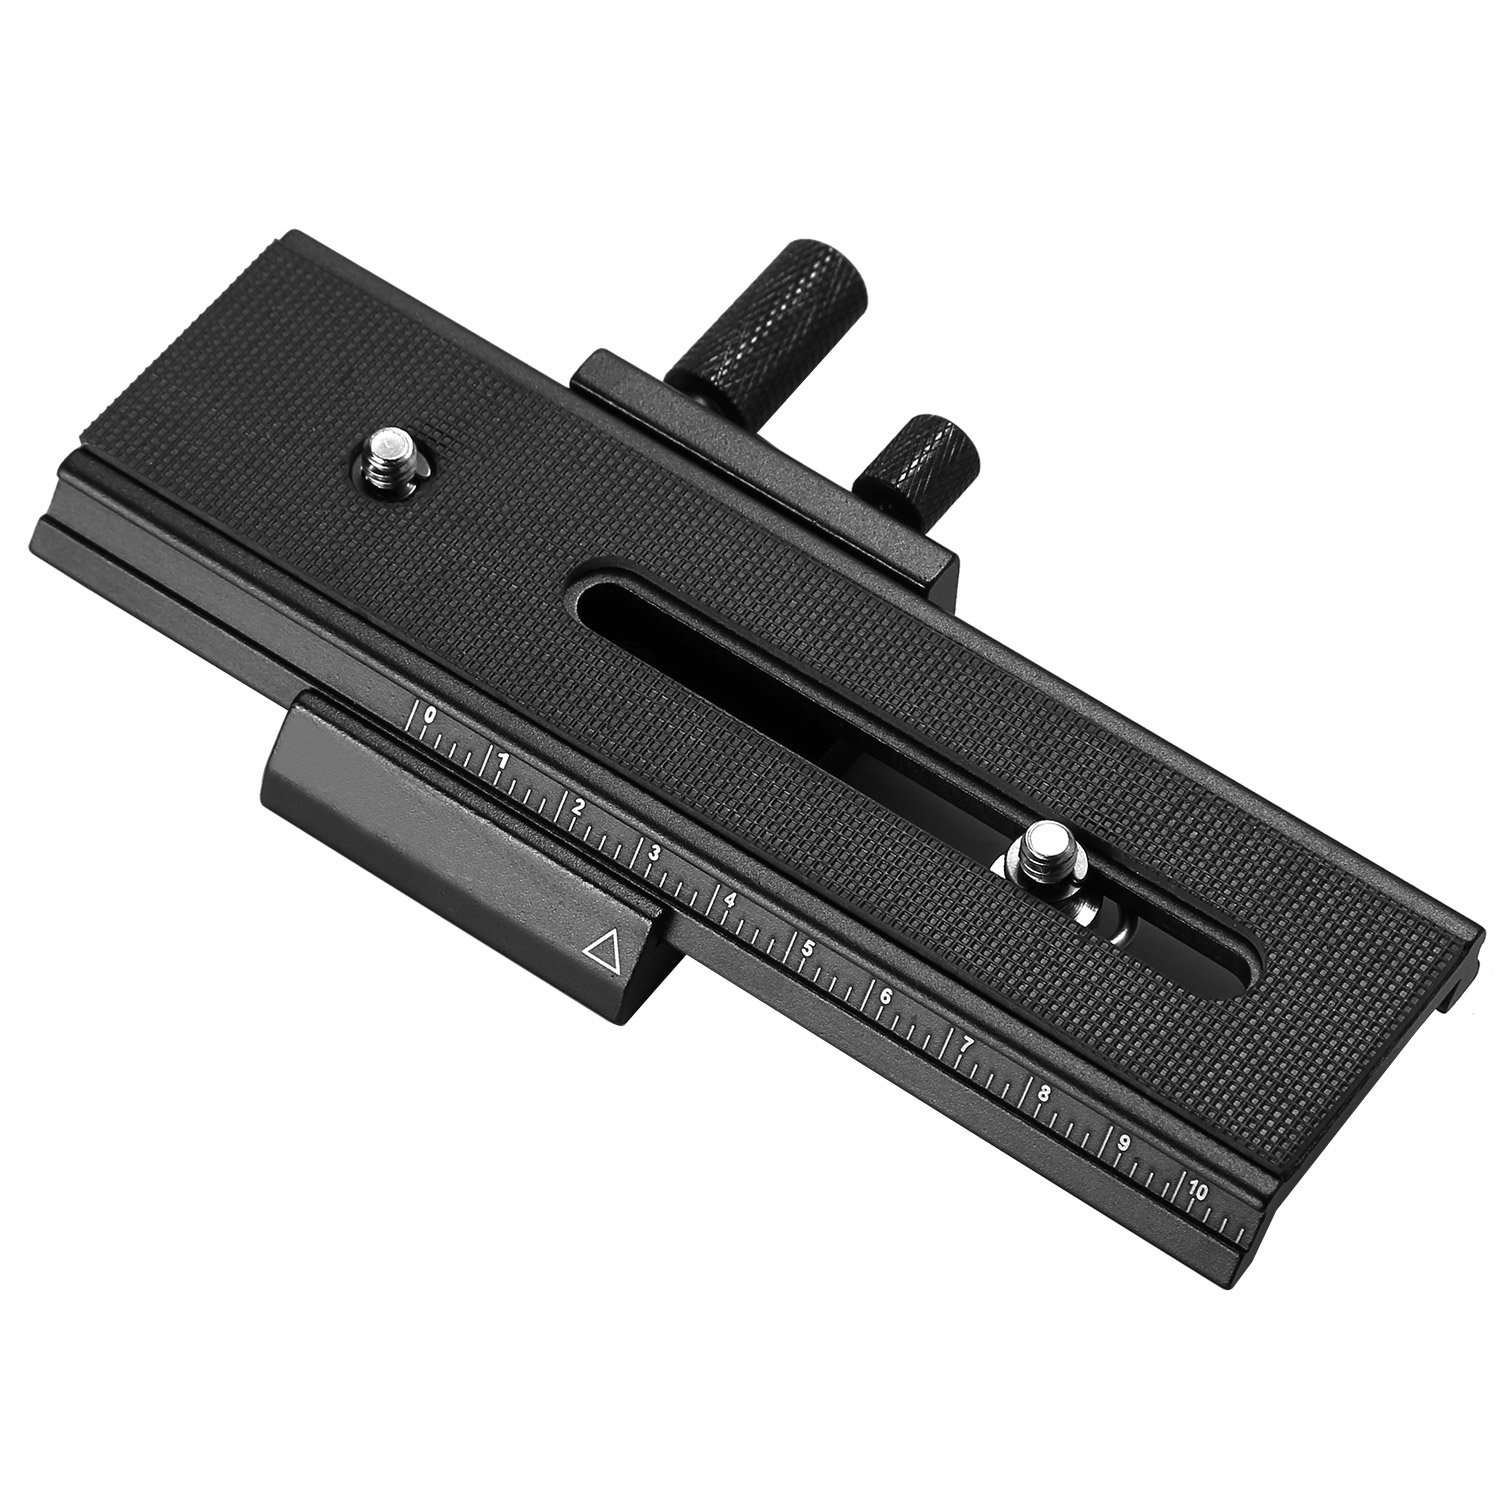 Crazefoto 2-Way Macro Focusing Focus Rail Slider/Close-Up Shooting Compatible with Canon Nikon, Pentax, Olympus, Sony, Samsung and Other Digital SLR Camera and DC with Standard 1/4-Inch Screw Hole by Crazefoto